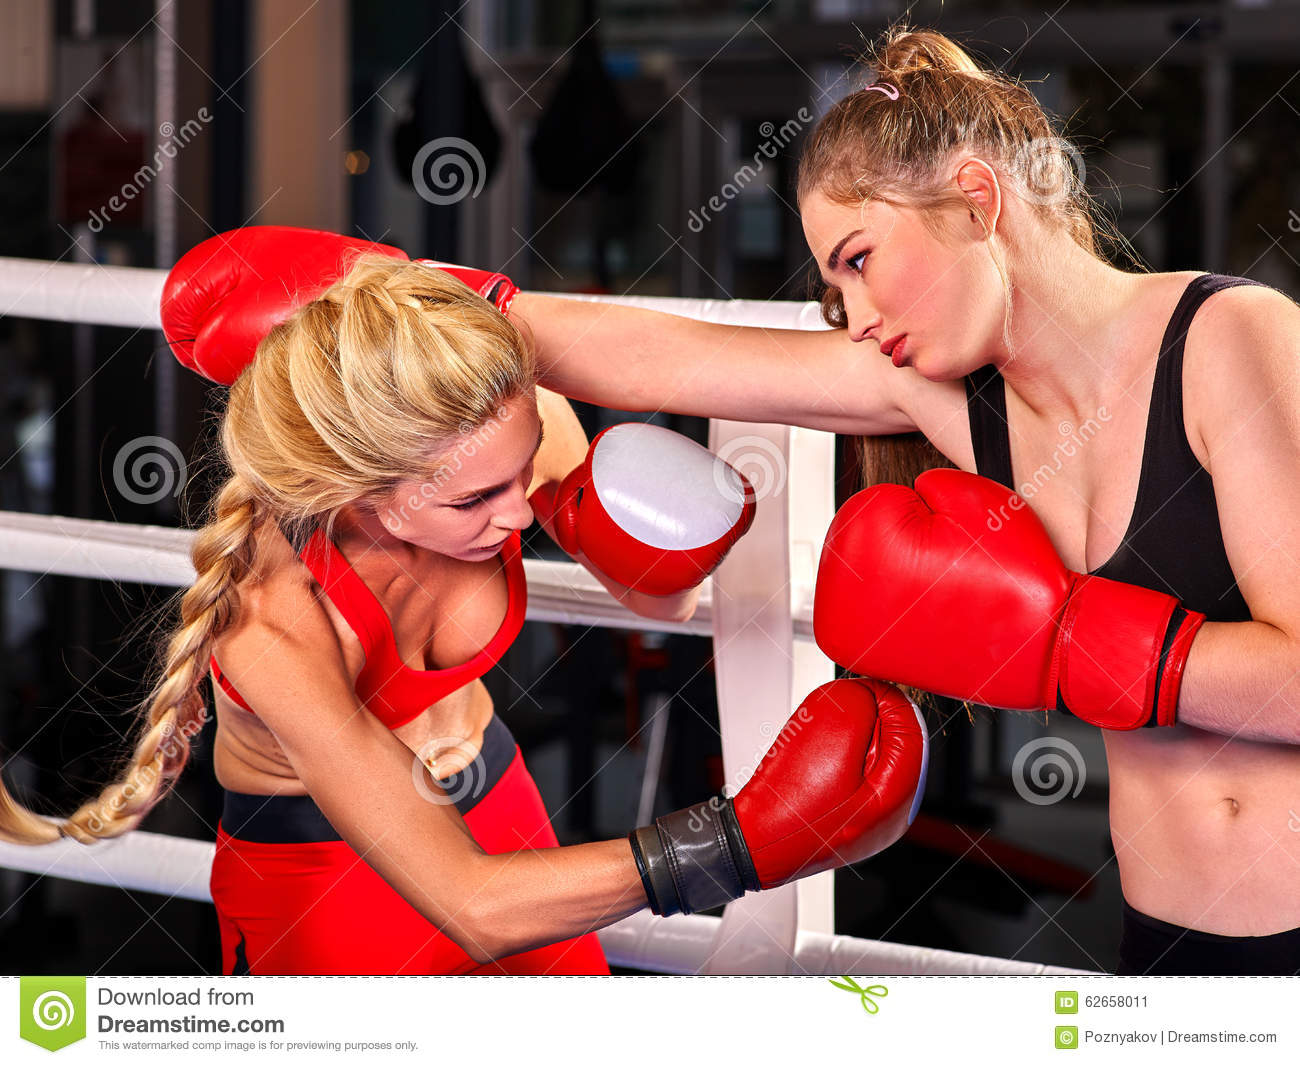 Women Fucking In A Boxing Ring 83